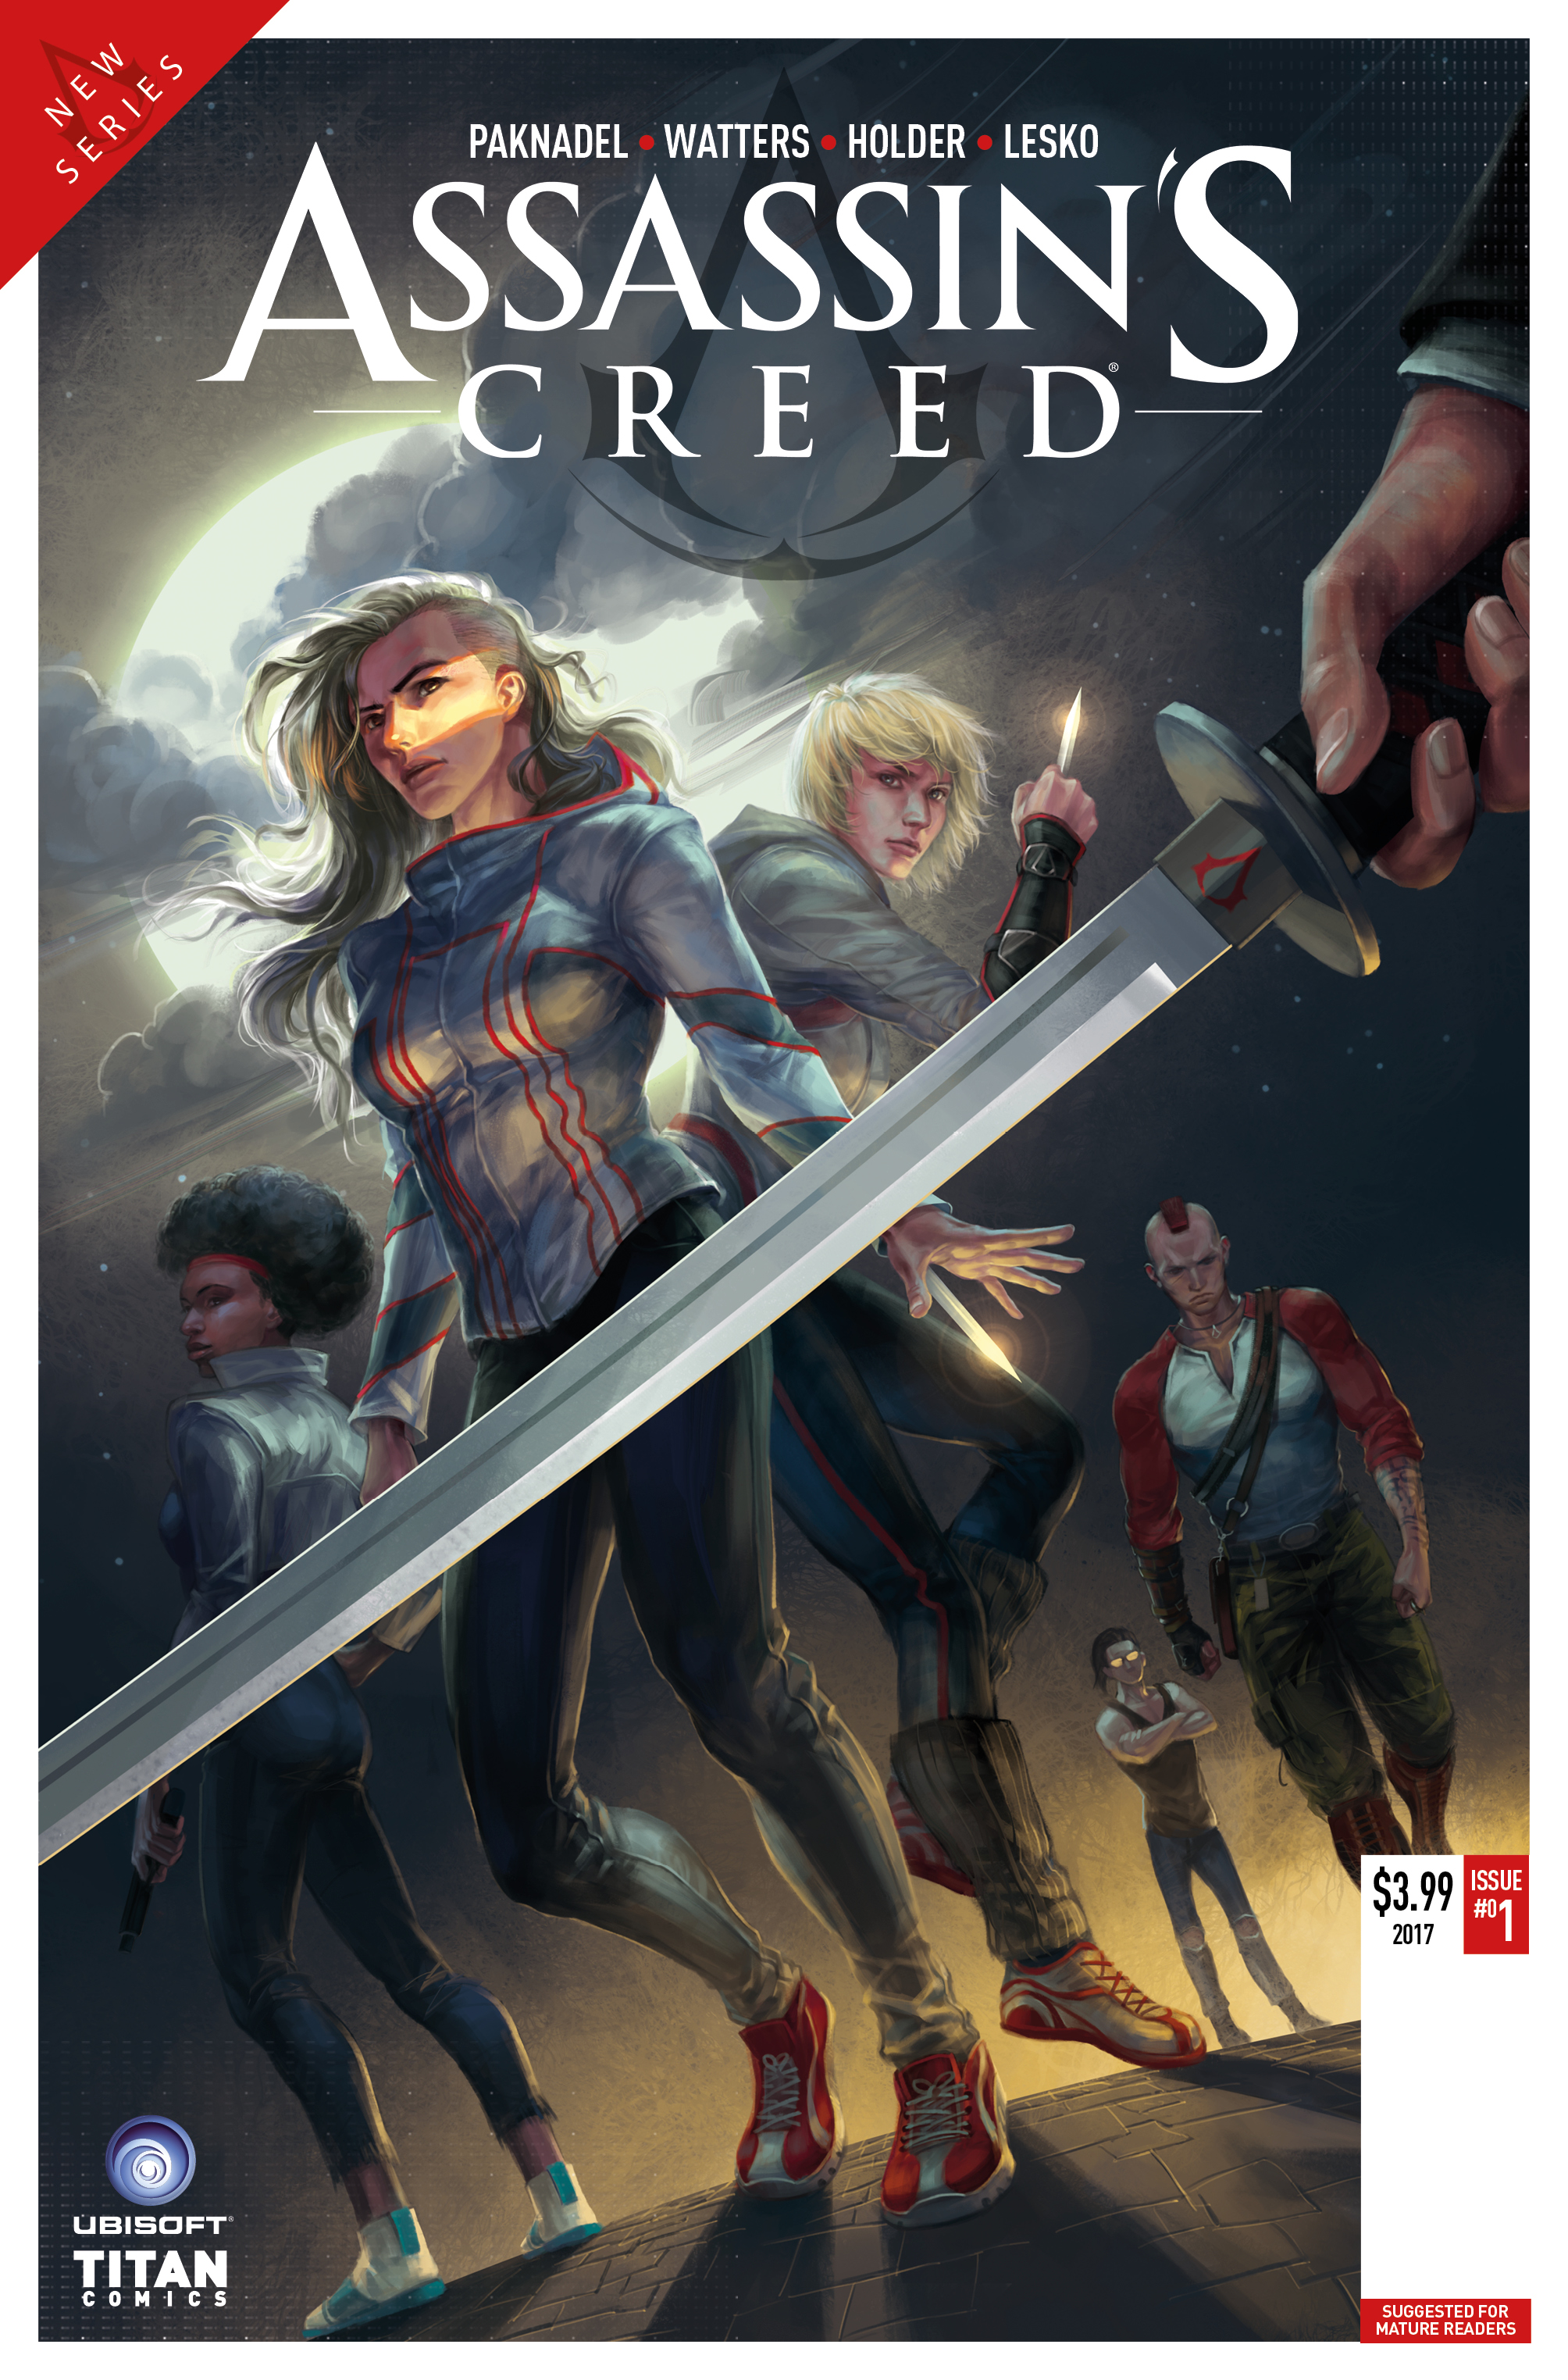 TITAN'S NEW ASSASSIN'S CREED COMIC SERIES TO CULMINATE ...